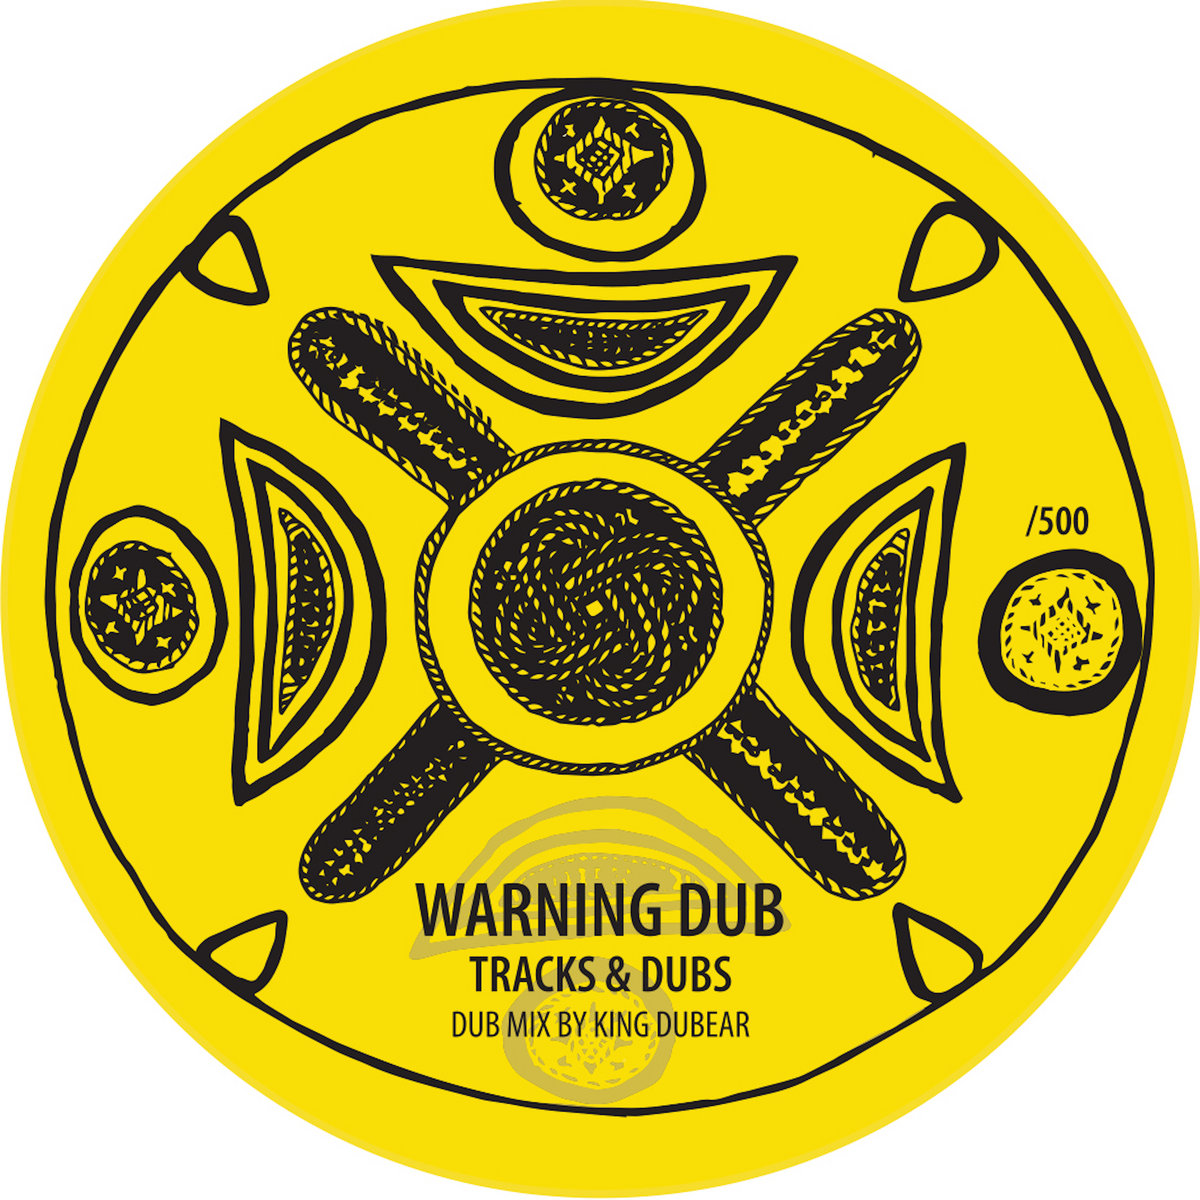 Musicians Radek EMZK Ciurko And King Dubear With English Well Known Vocalist Paul Fox Includes Unlimited Streaming Of Warning Dub Via The